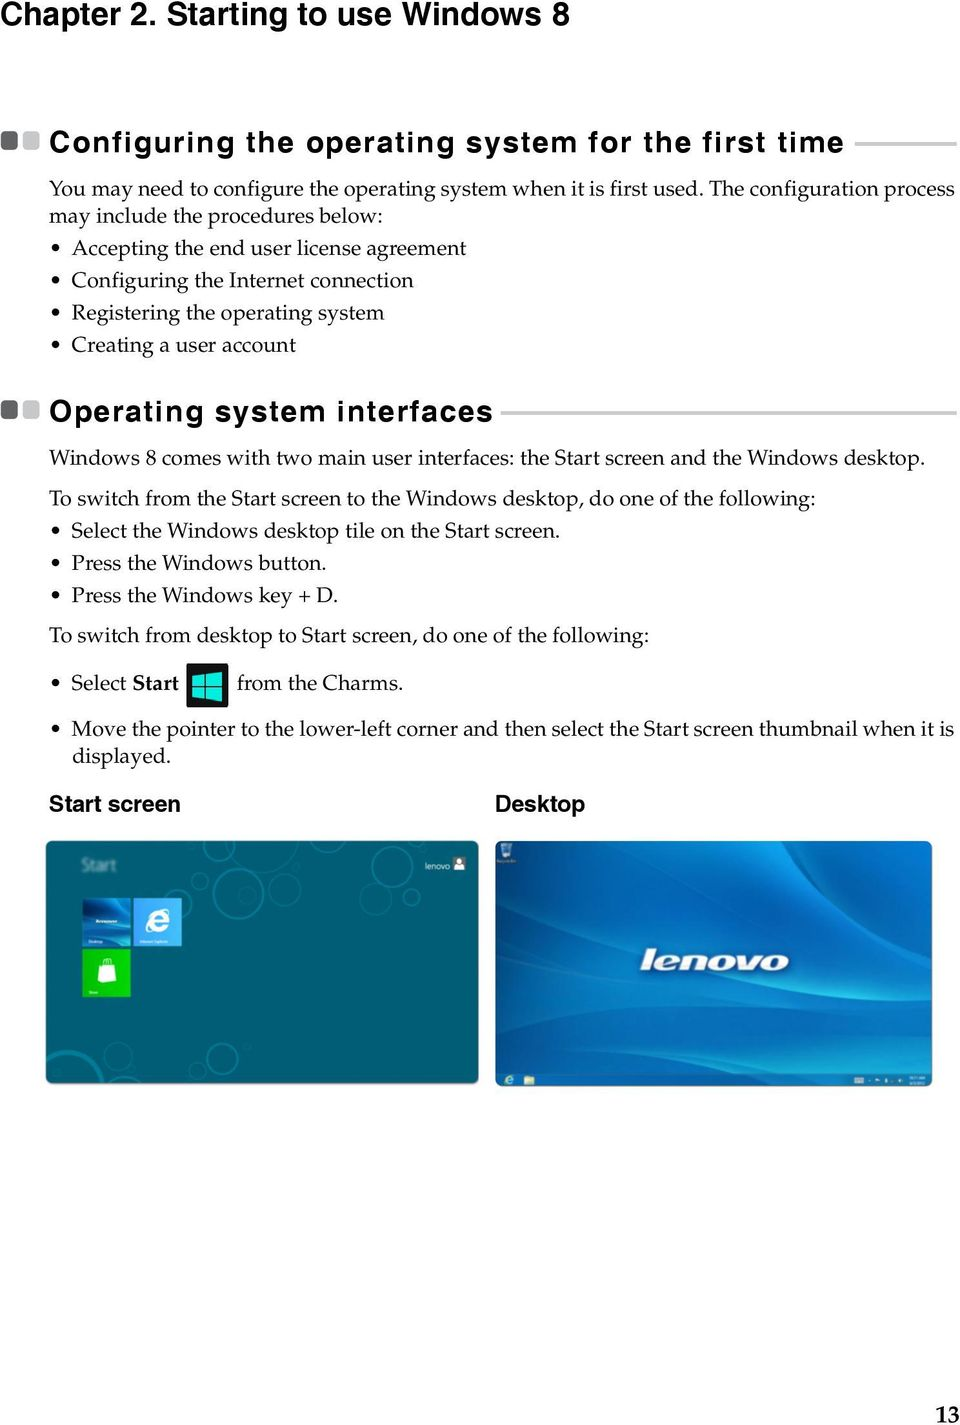 Operating system interfaces - - - - - - - - - - - - - - - - - - - - - - - - - - - - - - - - - - - - - - - - - - - - - - - - - - - - - - - - - - - - - - - - - - - - - - - - - Windows 8 comes with two